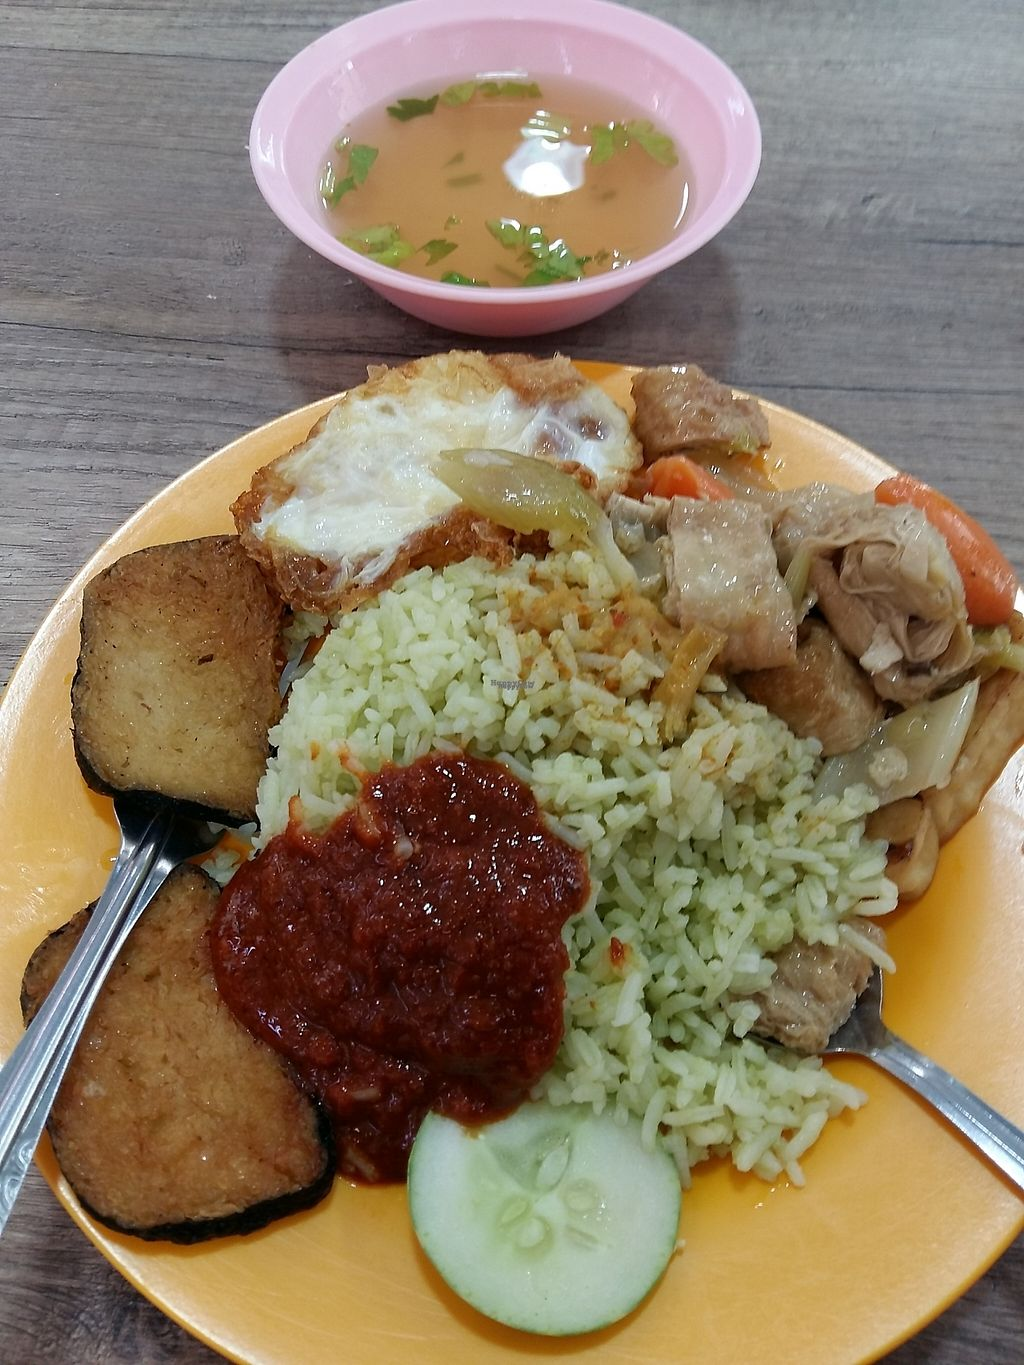 """Photo of Jia Le Yuan Vegetarian  by <a href=""""/members/profile/RichardLee"""">RichardLee</a> <br/>Nasi Lemak (has egg) Top right branches skin roll is added dish <br/> January 20, 2017  - <a href='/contact/abuse/image/85431/213451'>Report</a>"""